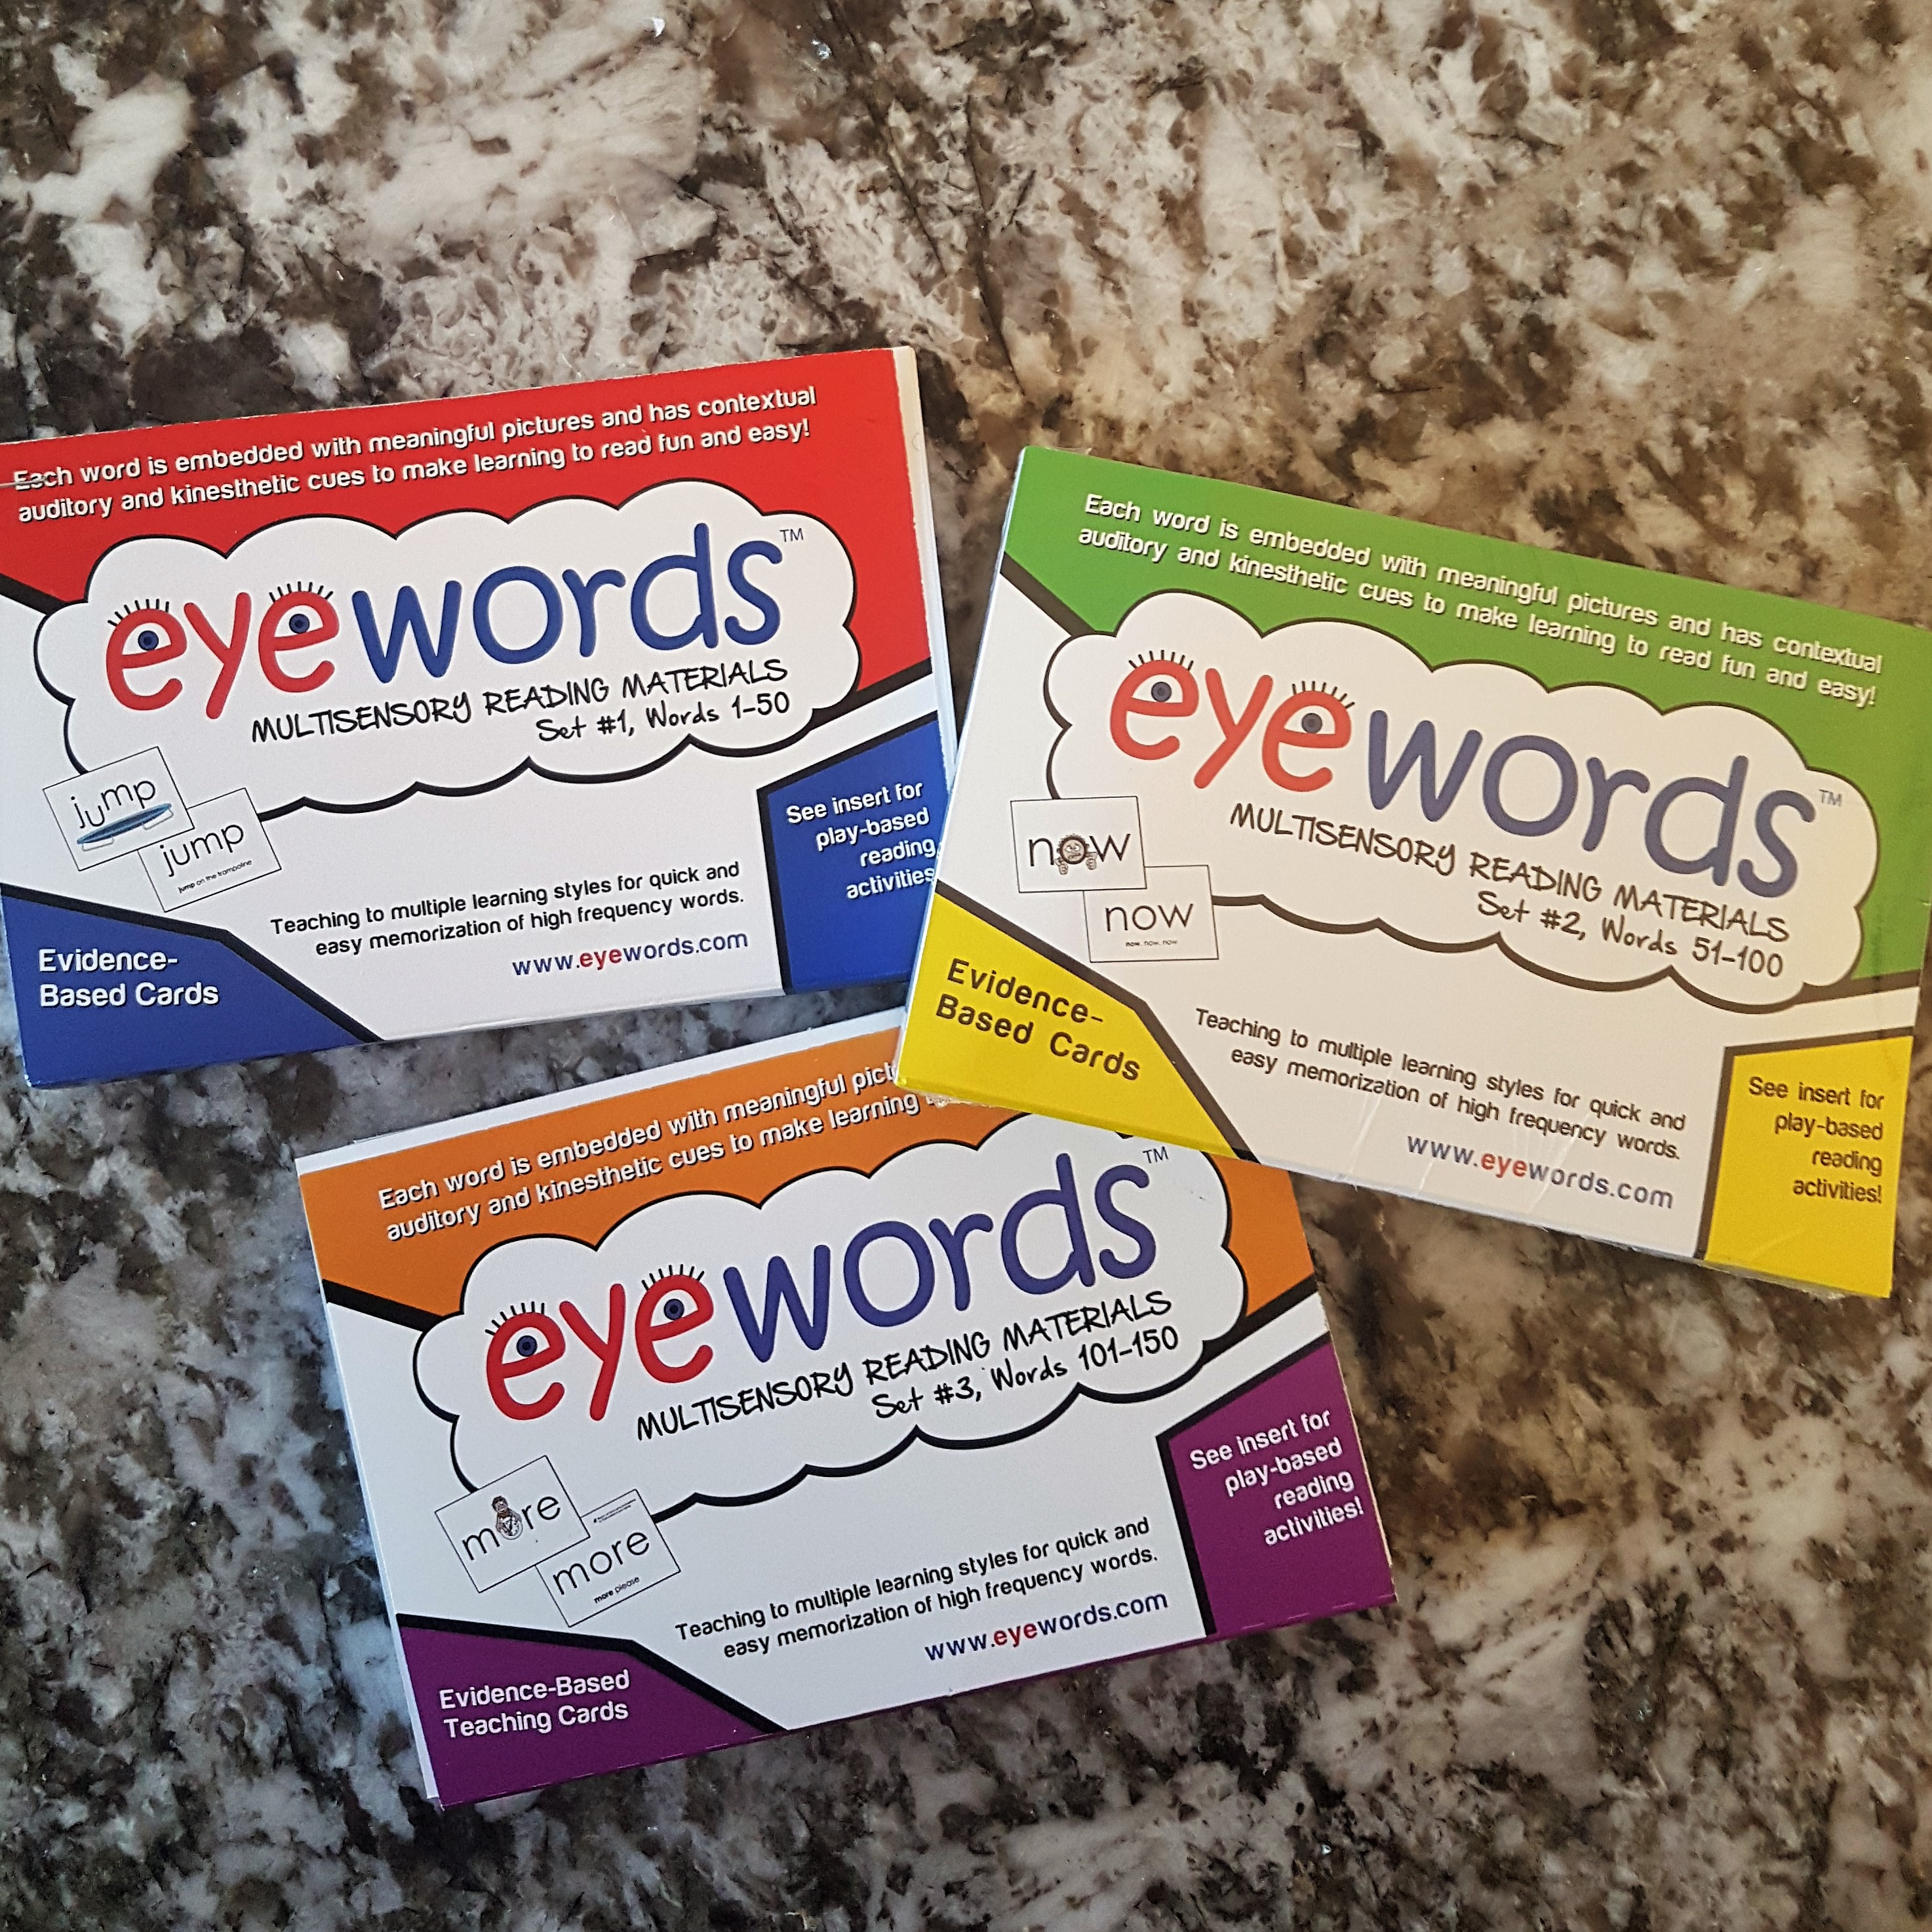 Eyewords Multisensory Sight Word Card Bundle, Sets #1-#3, Words 1-150